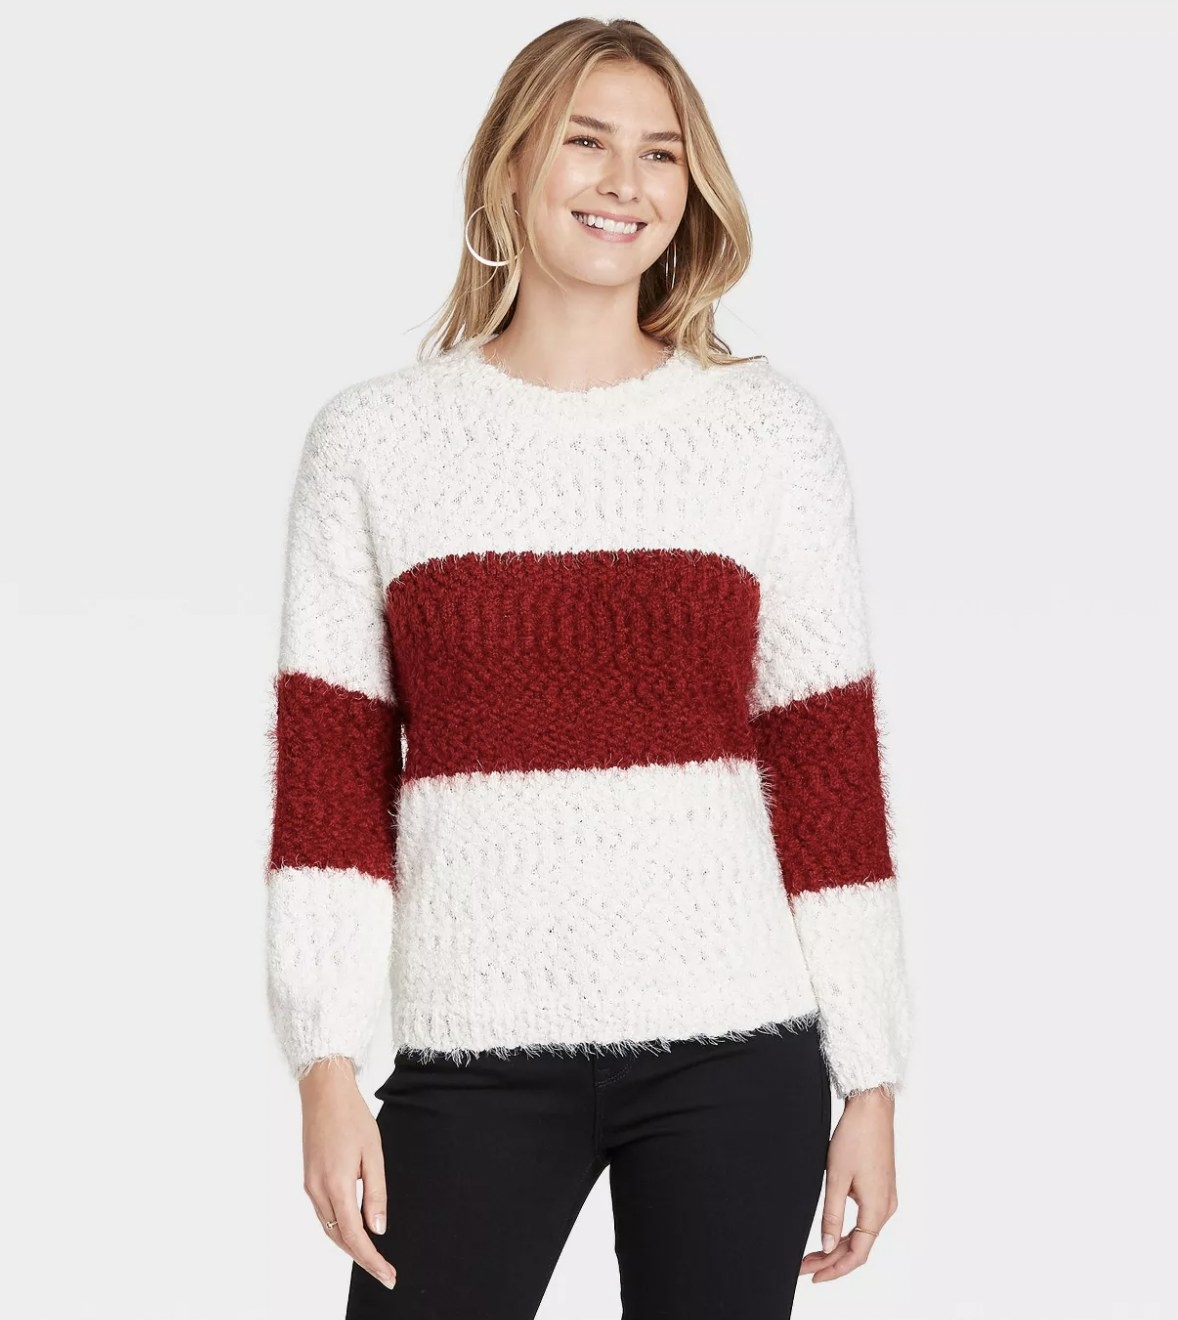 A model wearing a crimson and white sweater